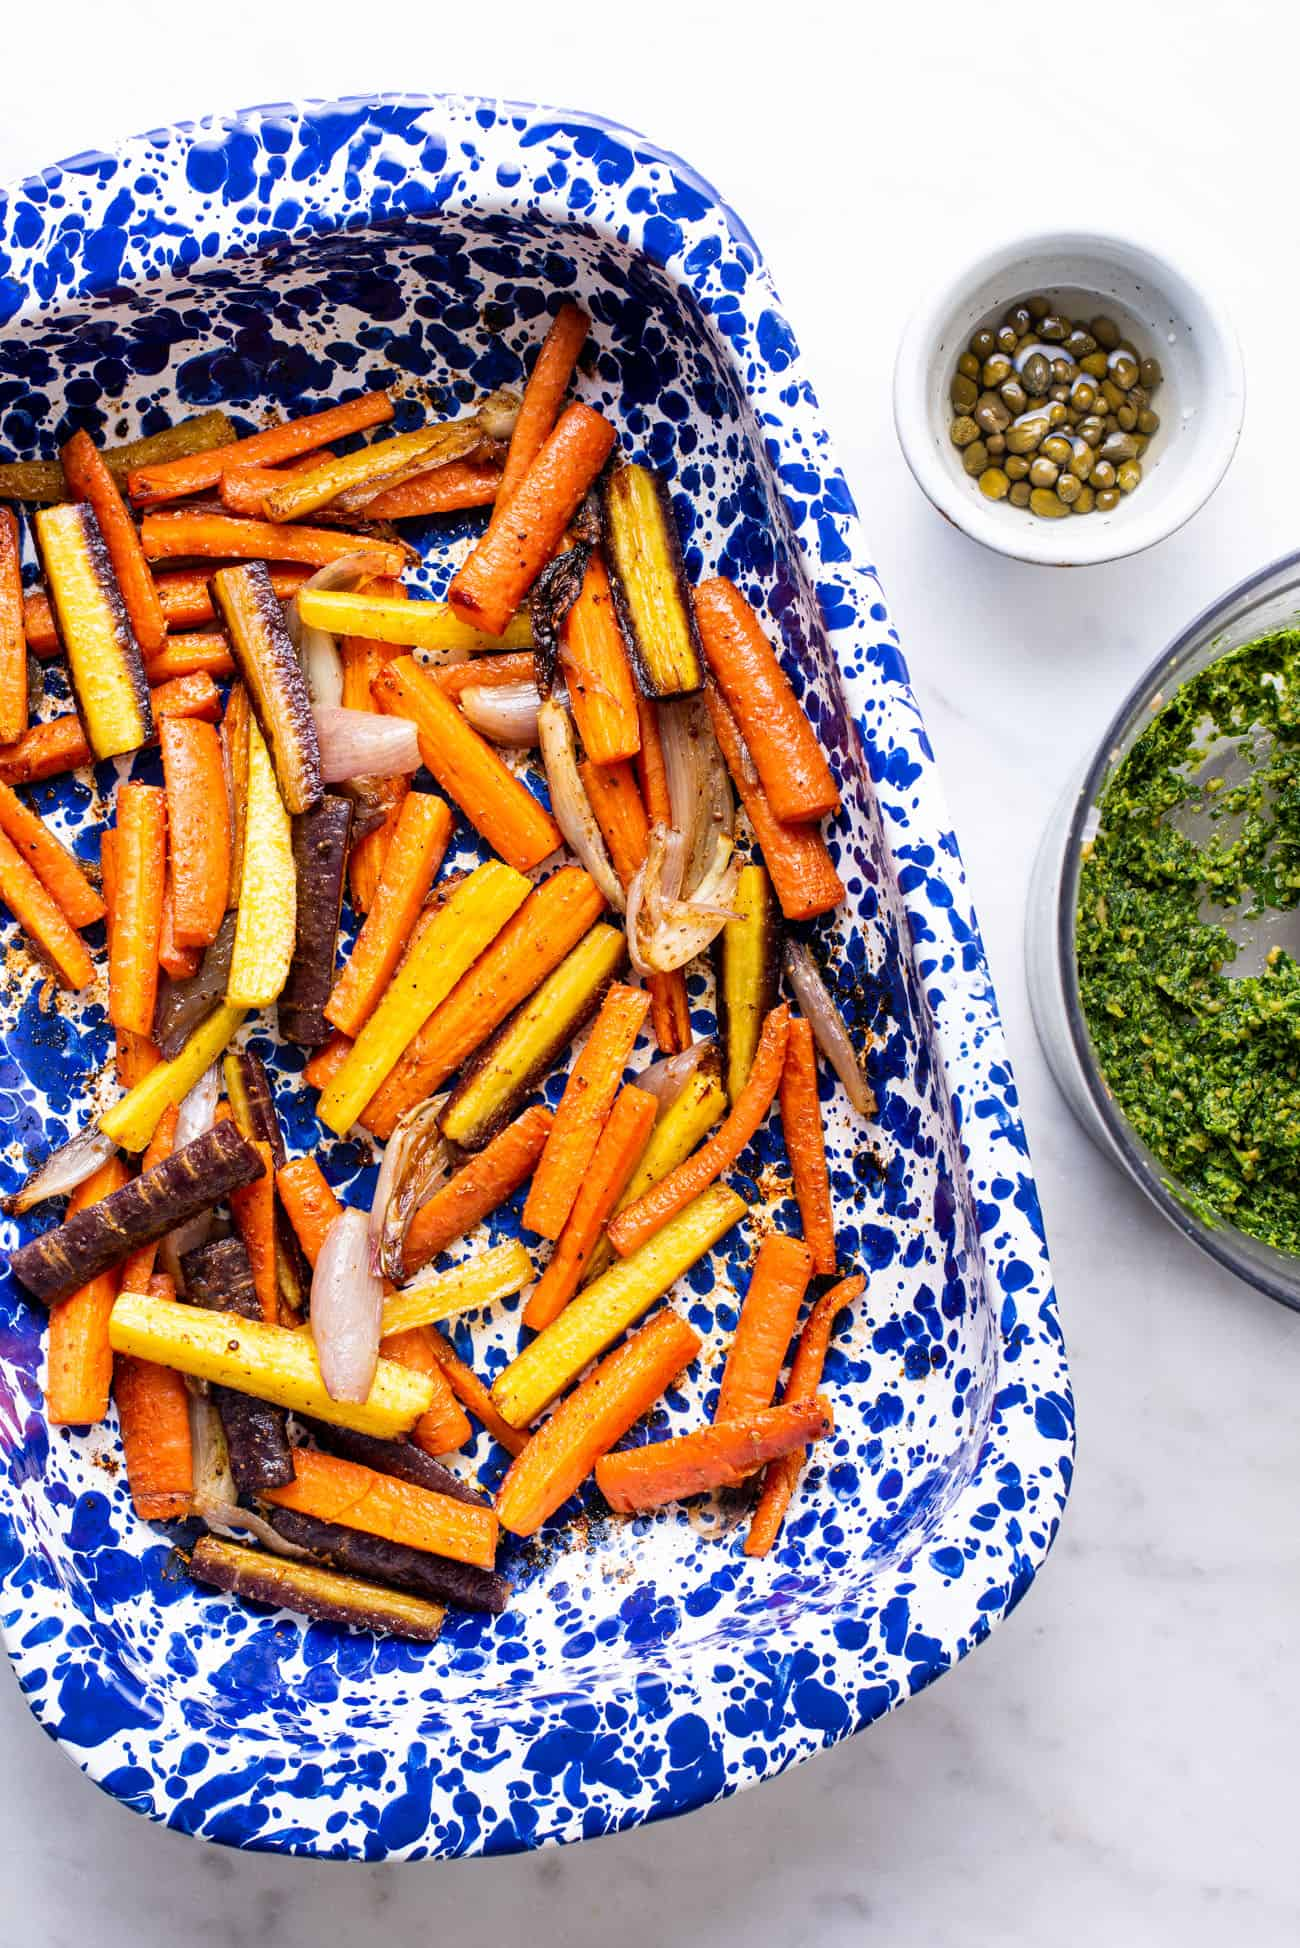 Roasted carrots and shallots in a blue speckled roasting pan next to pesto and capers